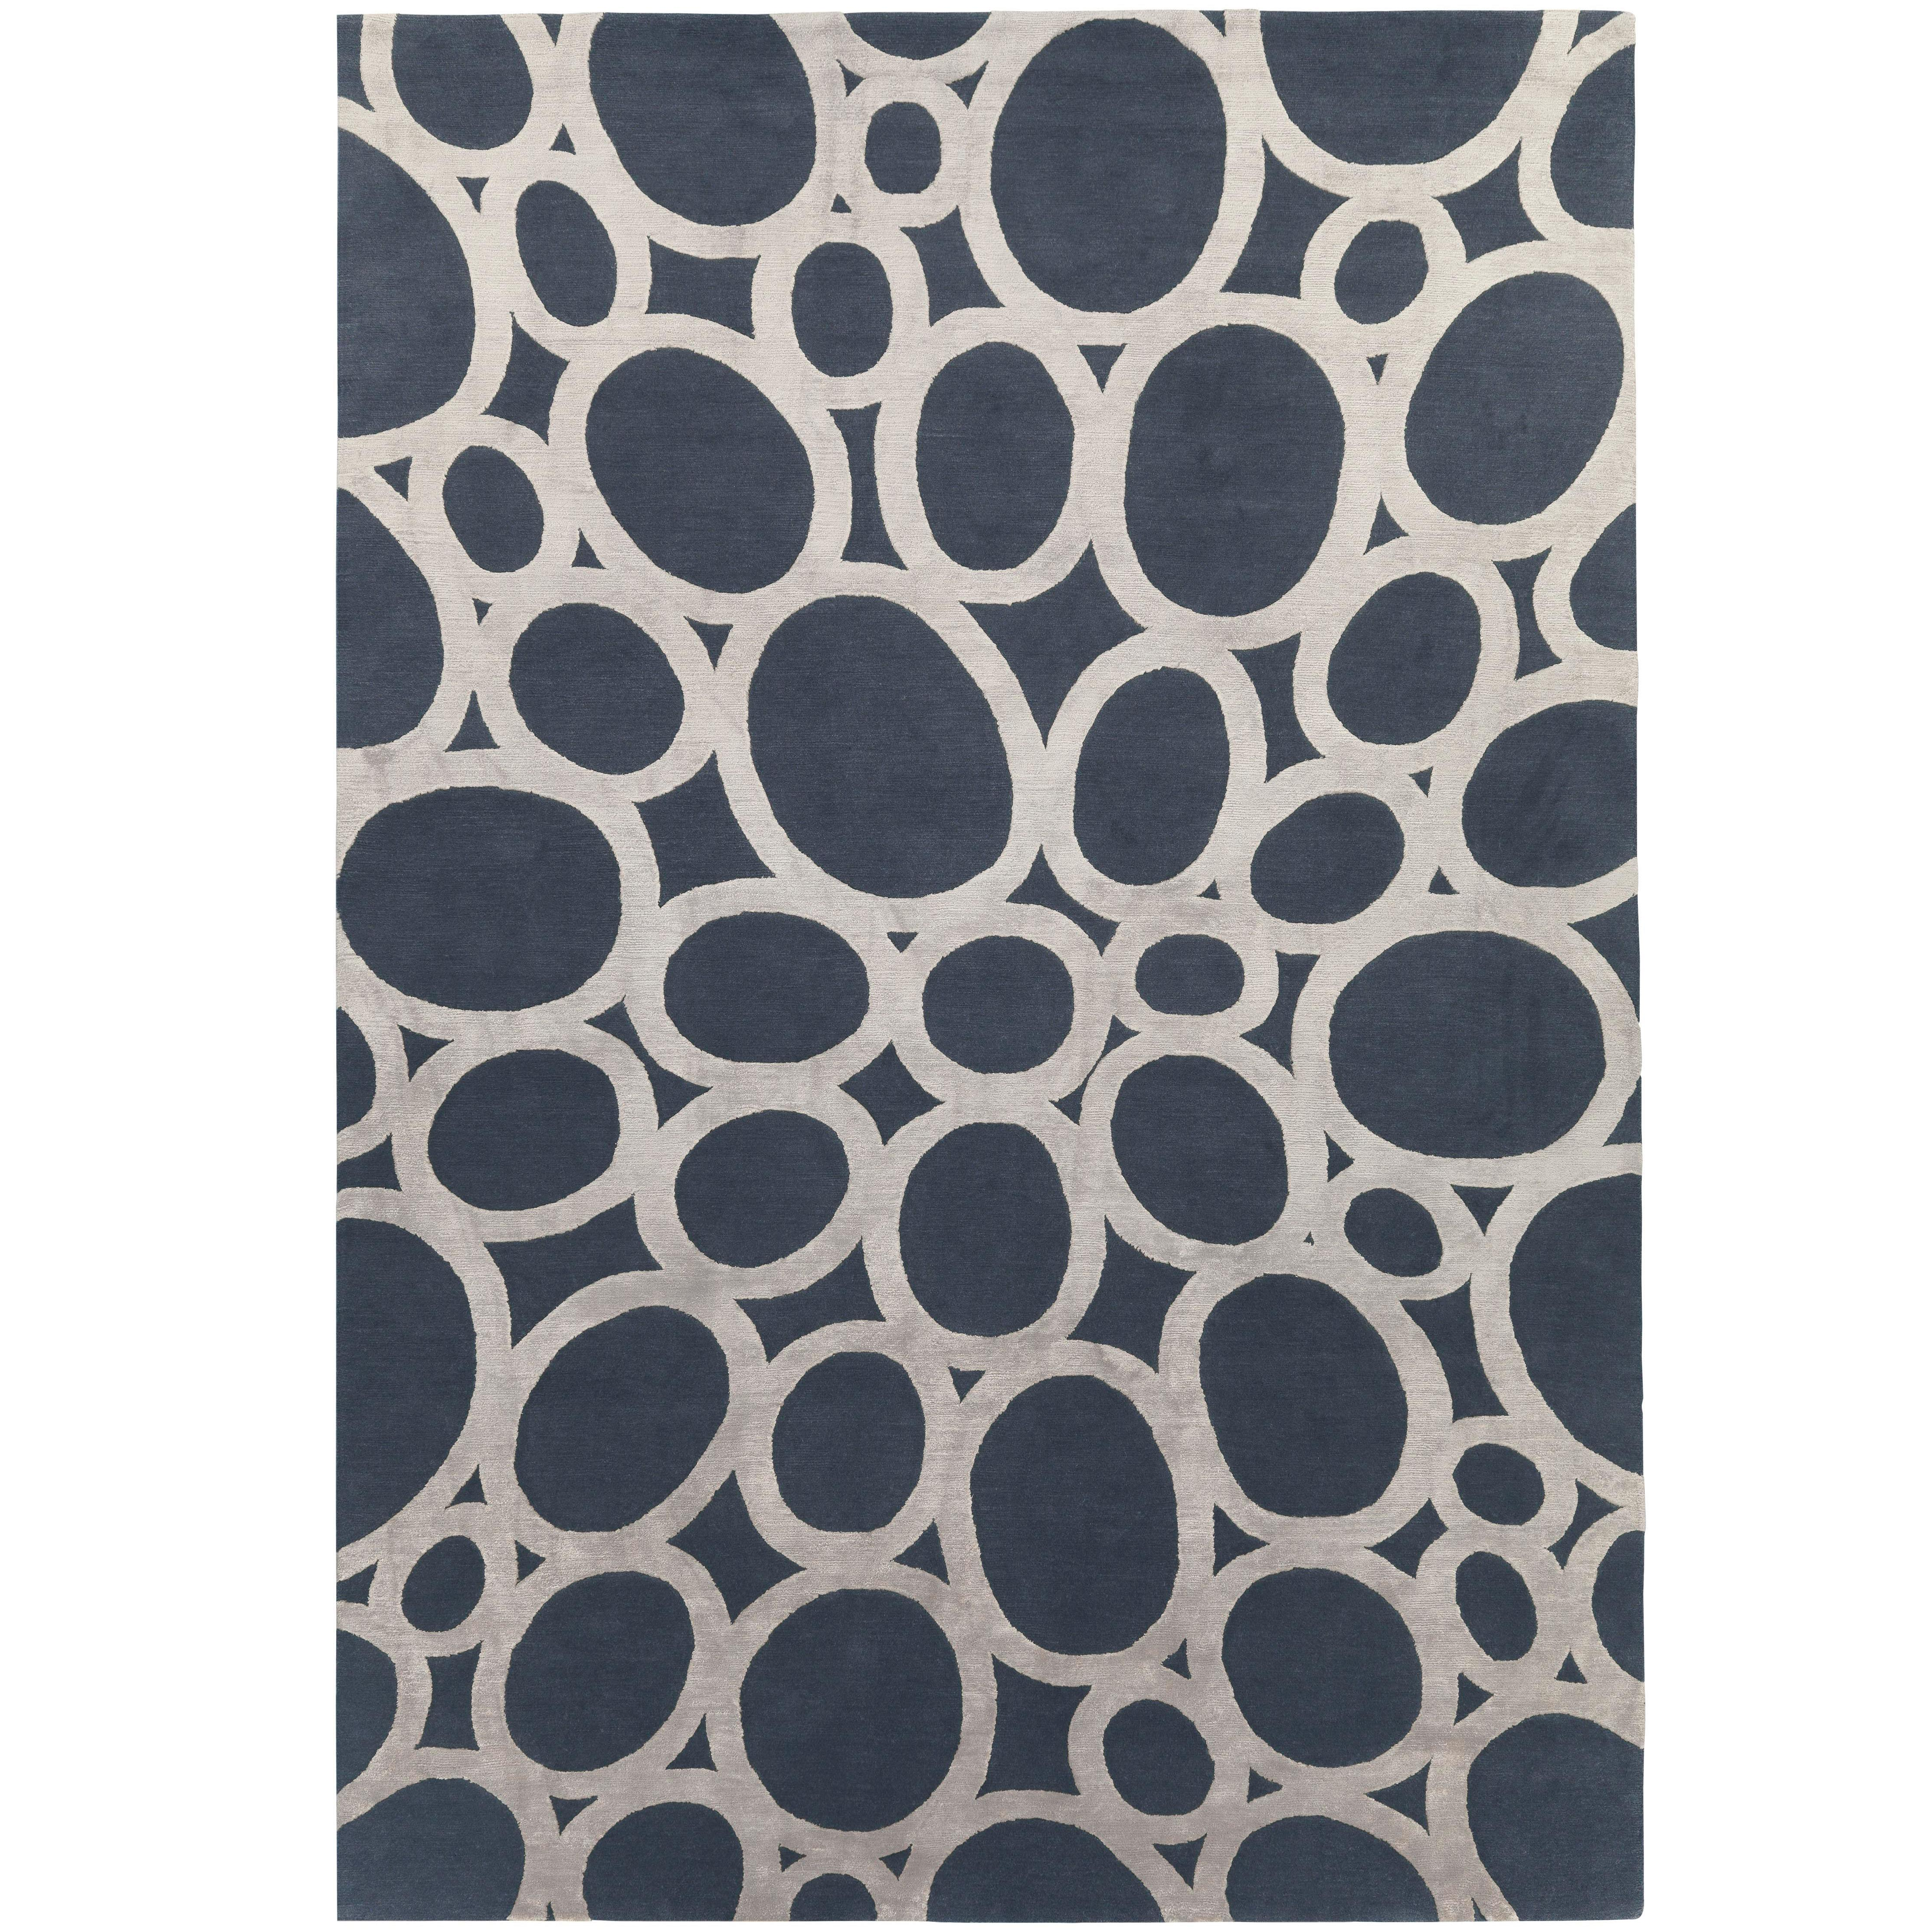 Silver Rings Hand-Knotted 10x8 Rug in Wool and Silk by David Rockwell